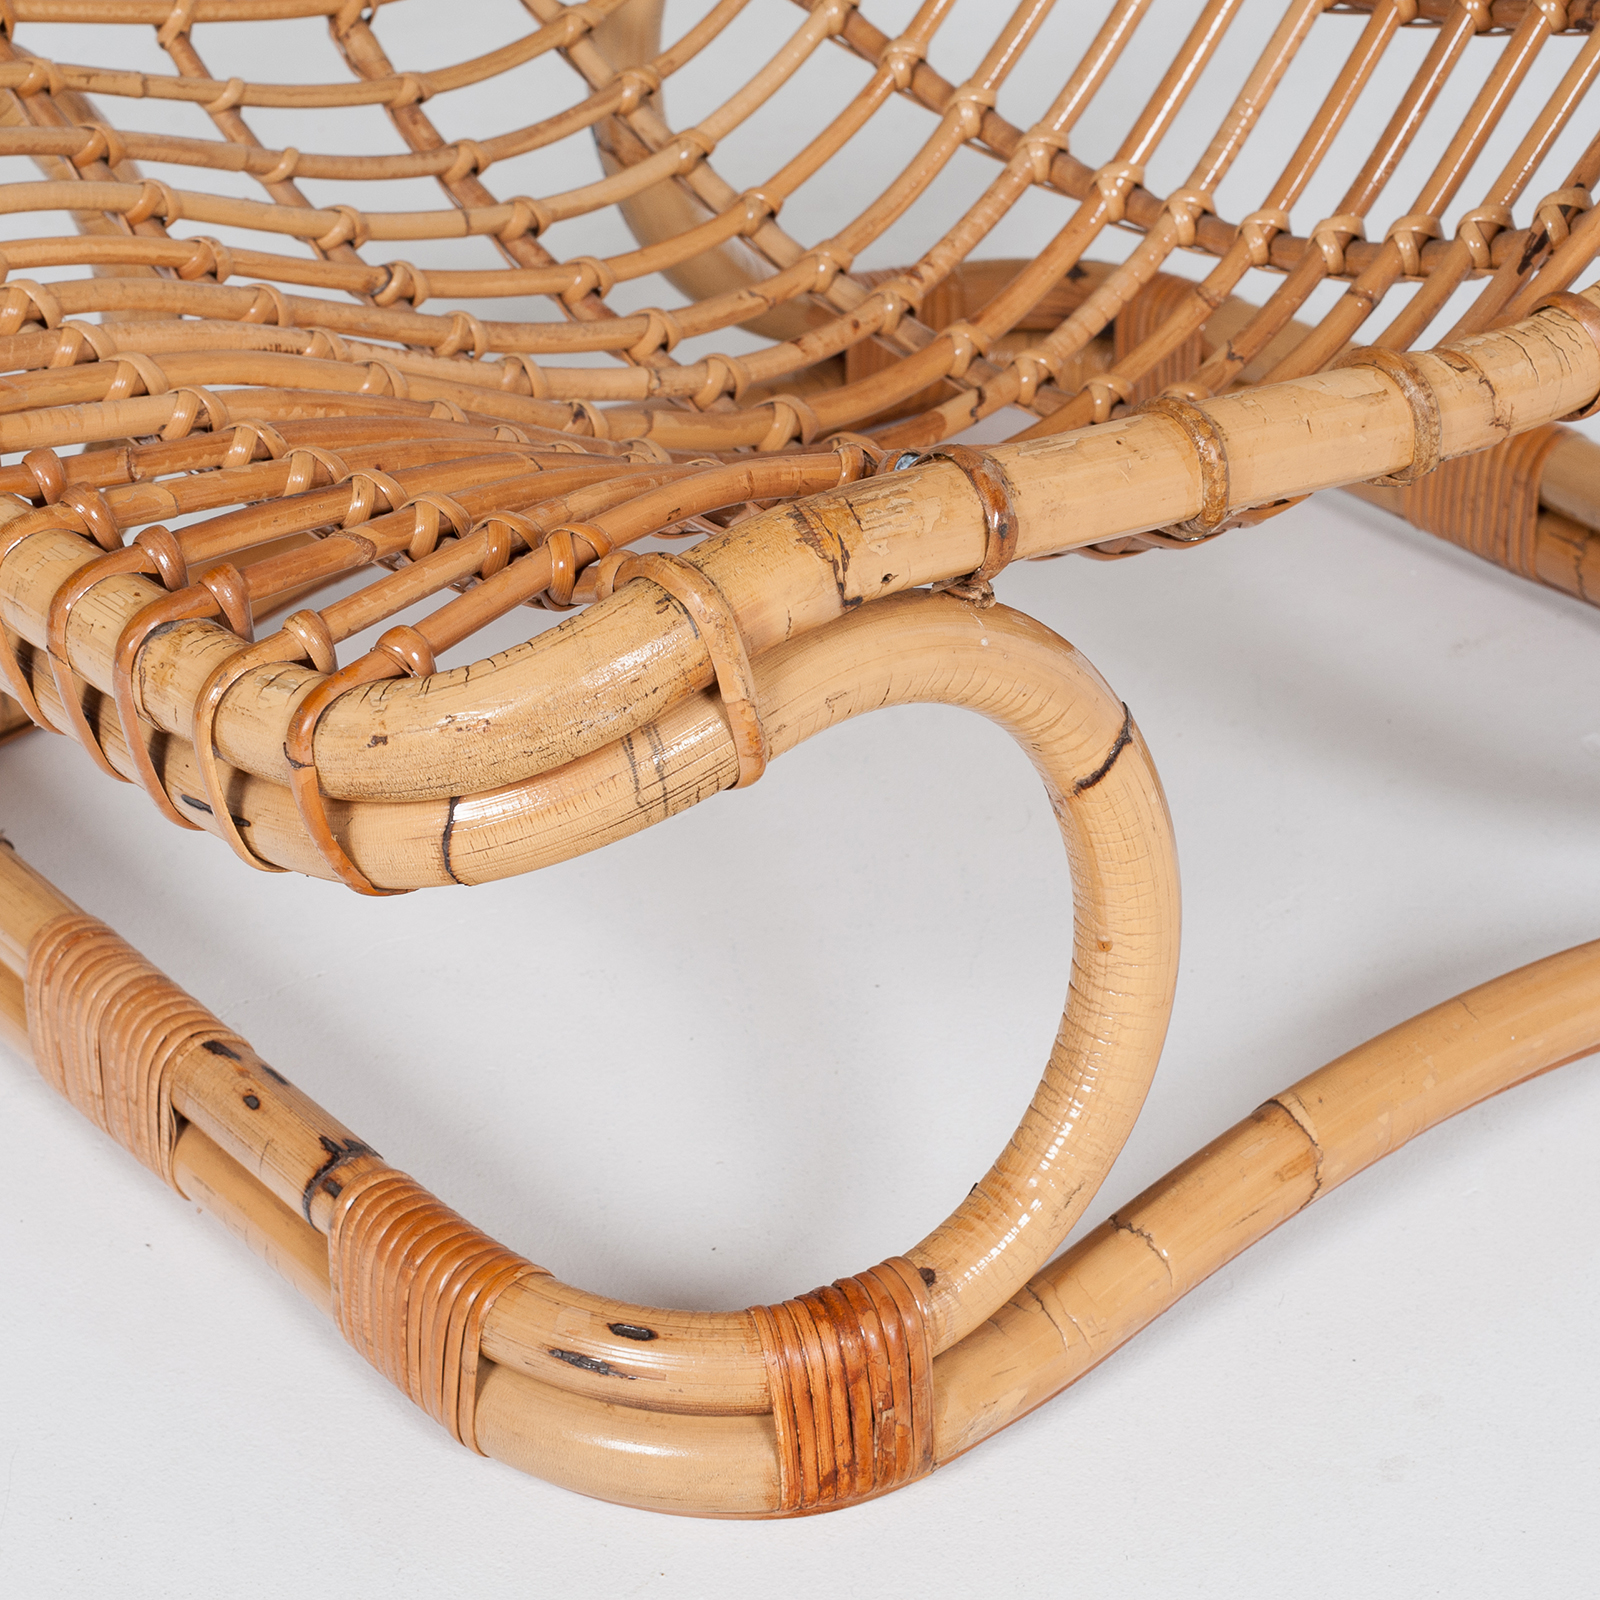 Lounge Chair By Tito Agnoli In Cane, 1960s, Italy60